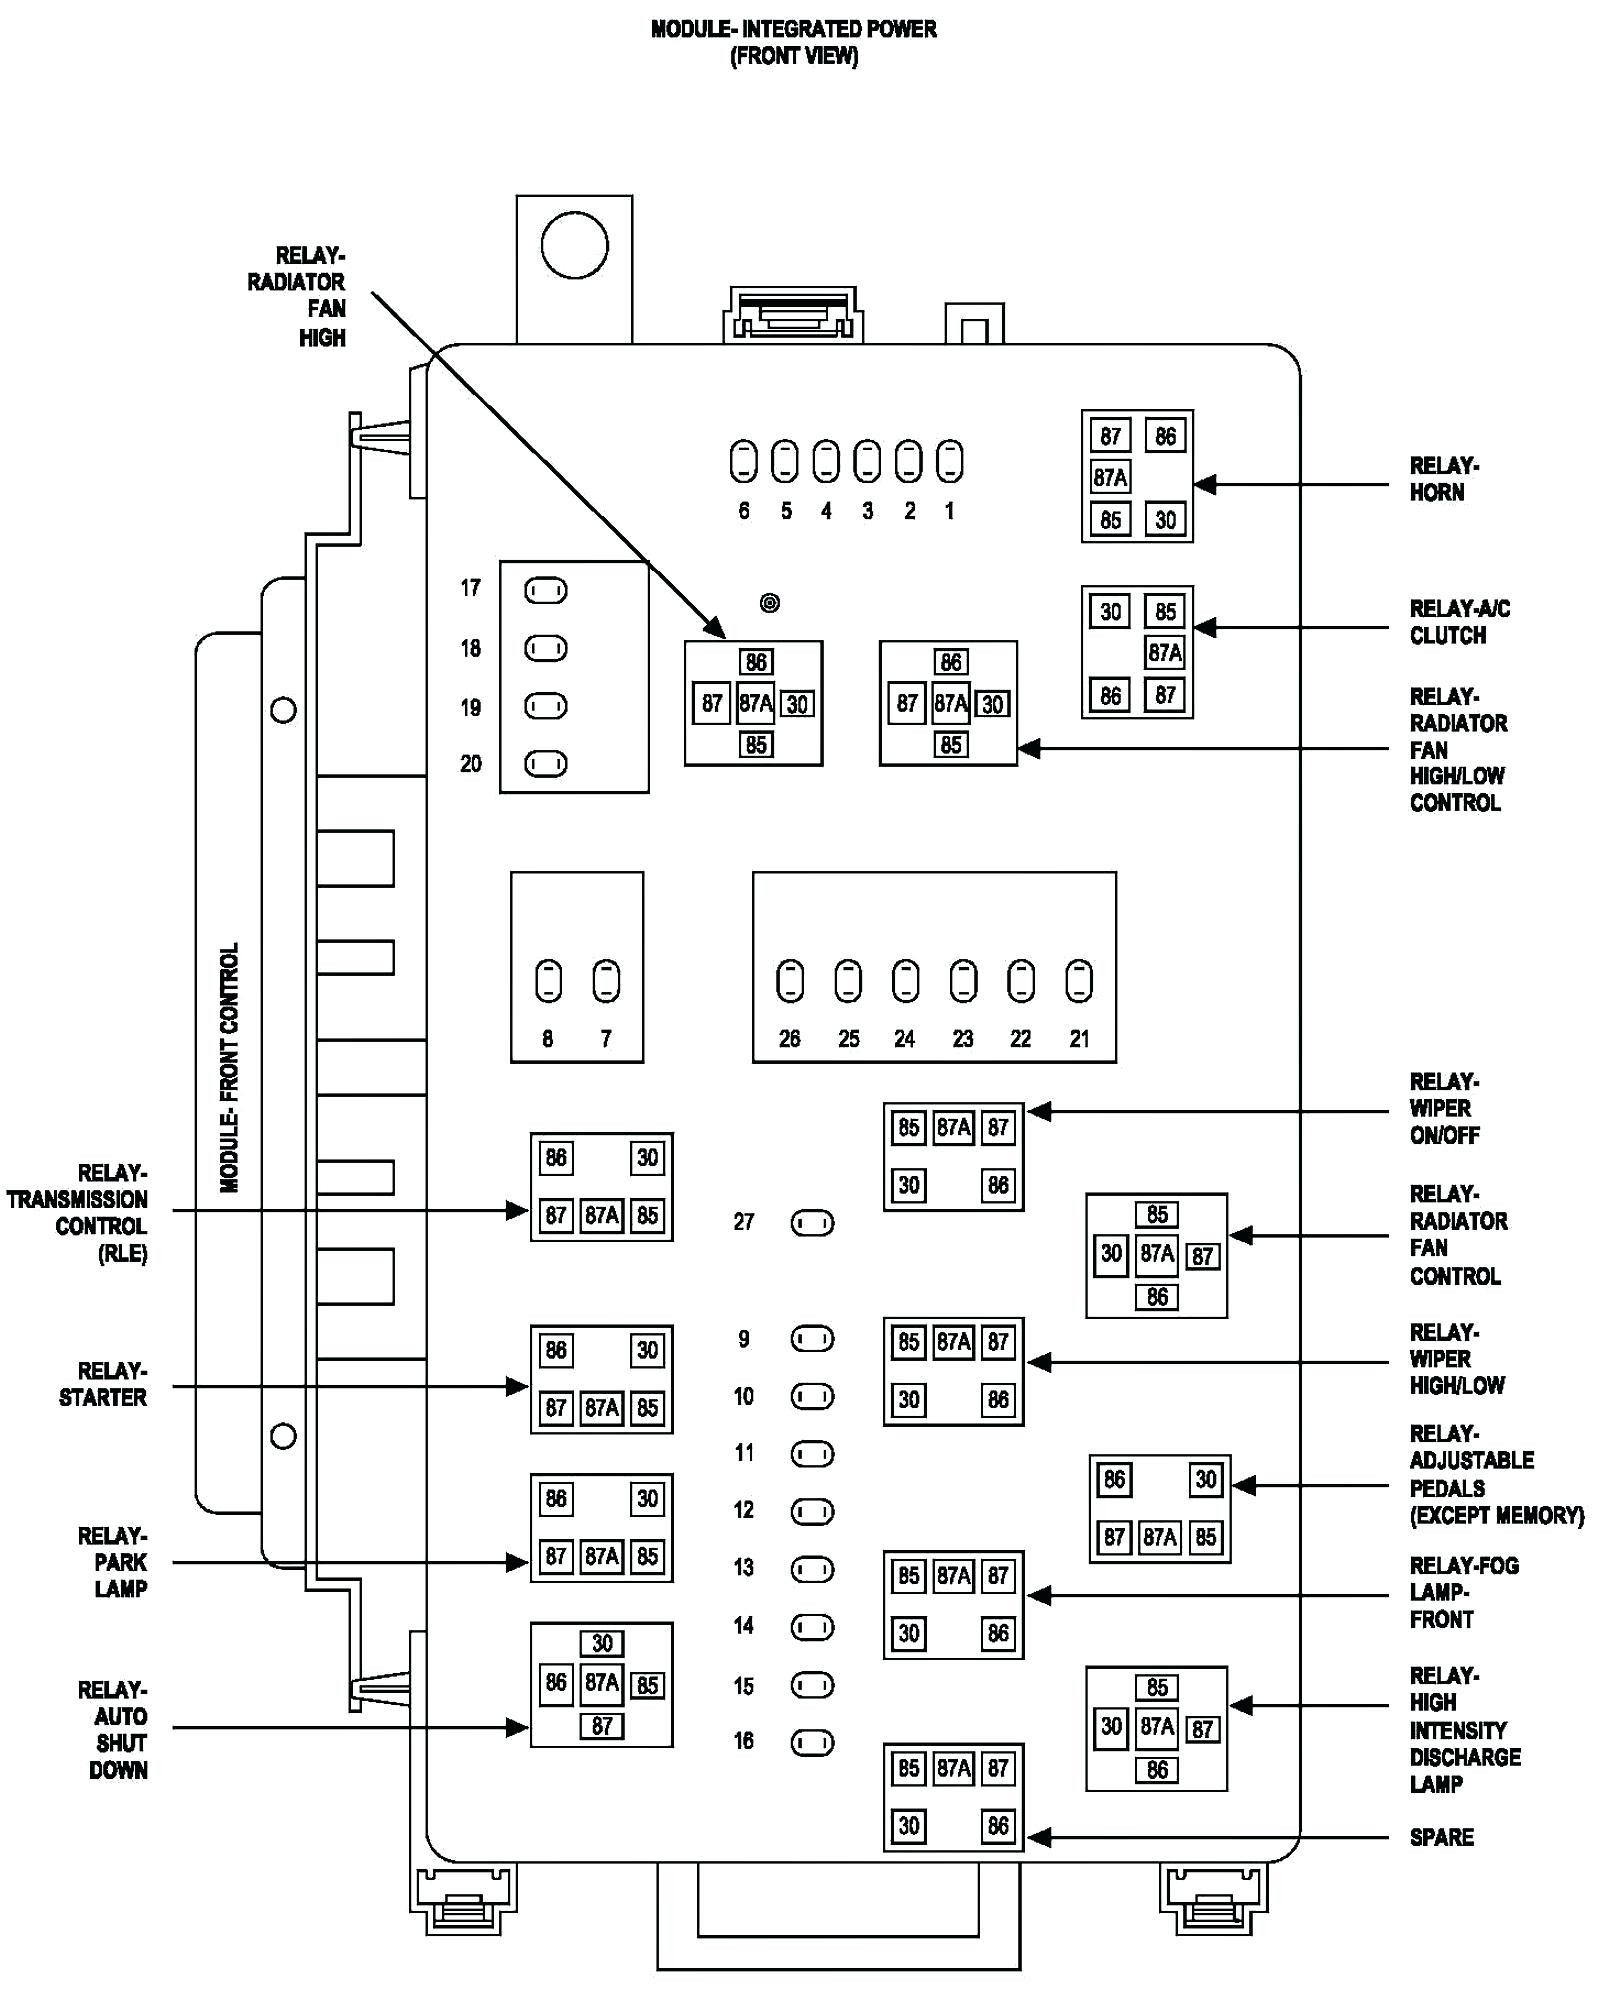 Chrysler Lhs Fuse Box - Wiring Diagram Data